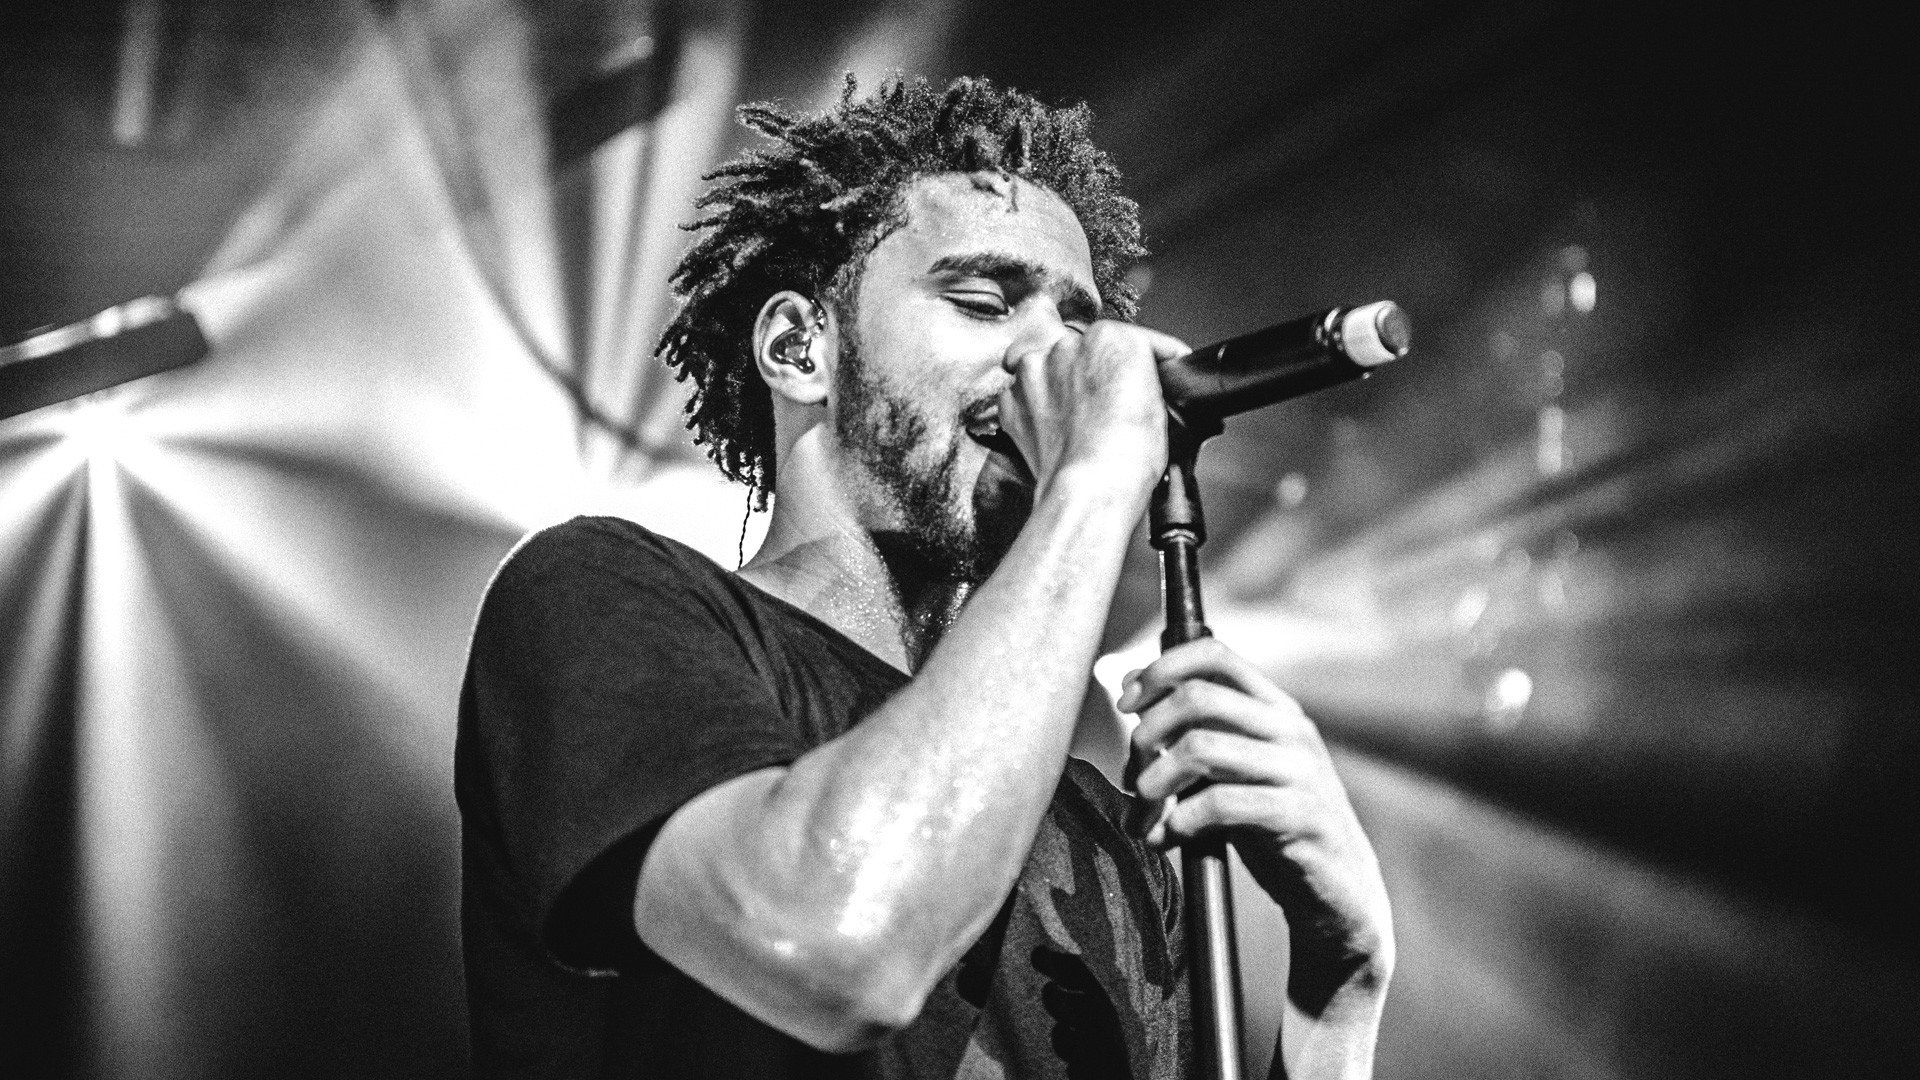 AN HBO CONCERT FILM | Premieres January 9, 2016. J. Cole Forest Hills Drive:  Homecoming